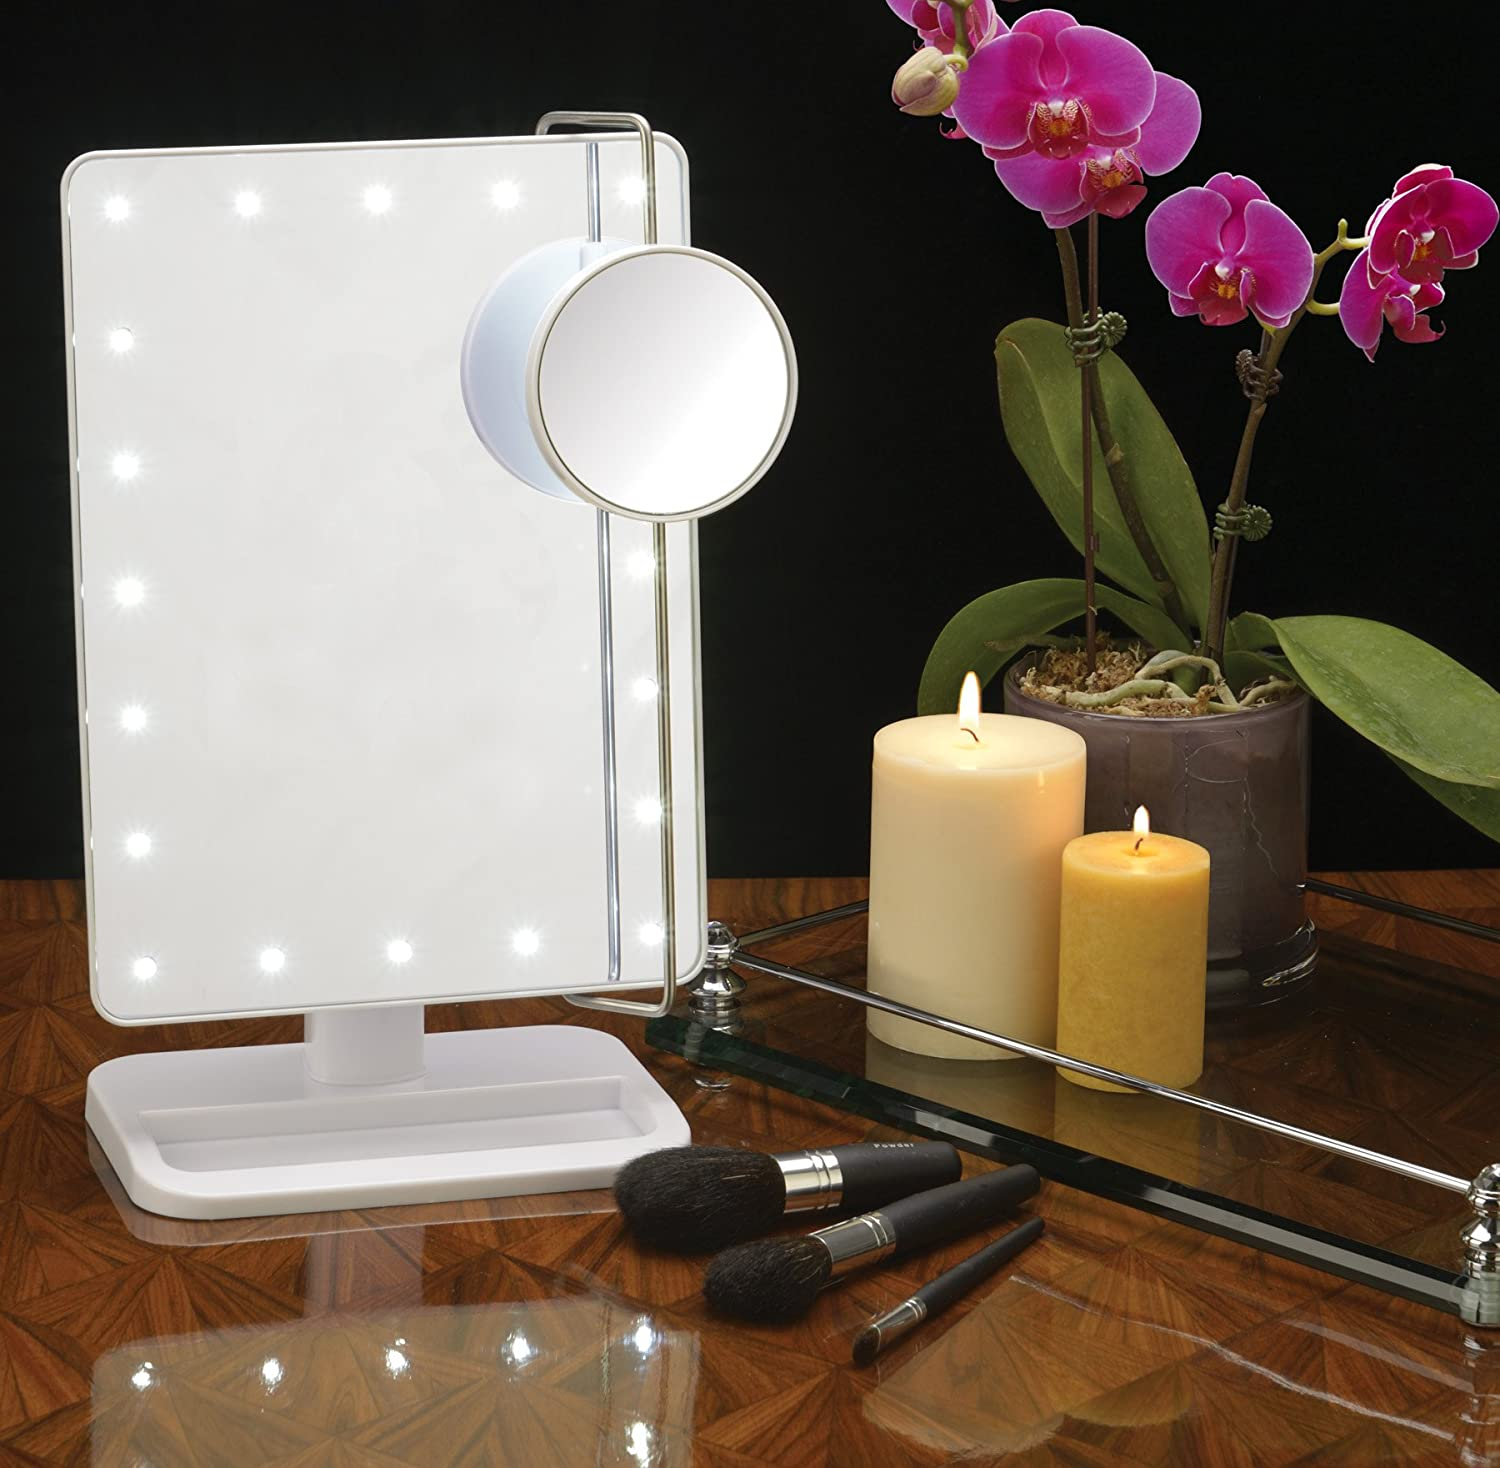 mirrorlighted makeup lighted house bathroom pin with pinterest mirror light led vanity